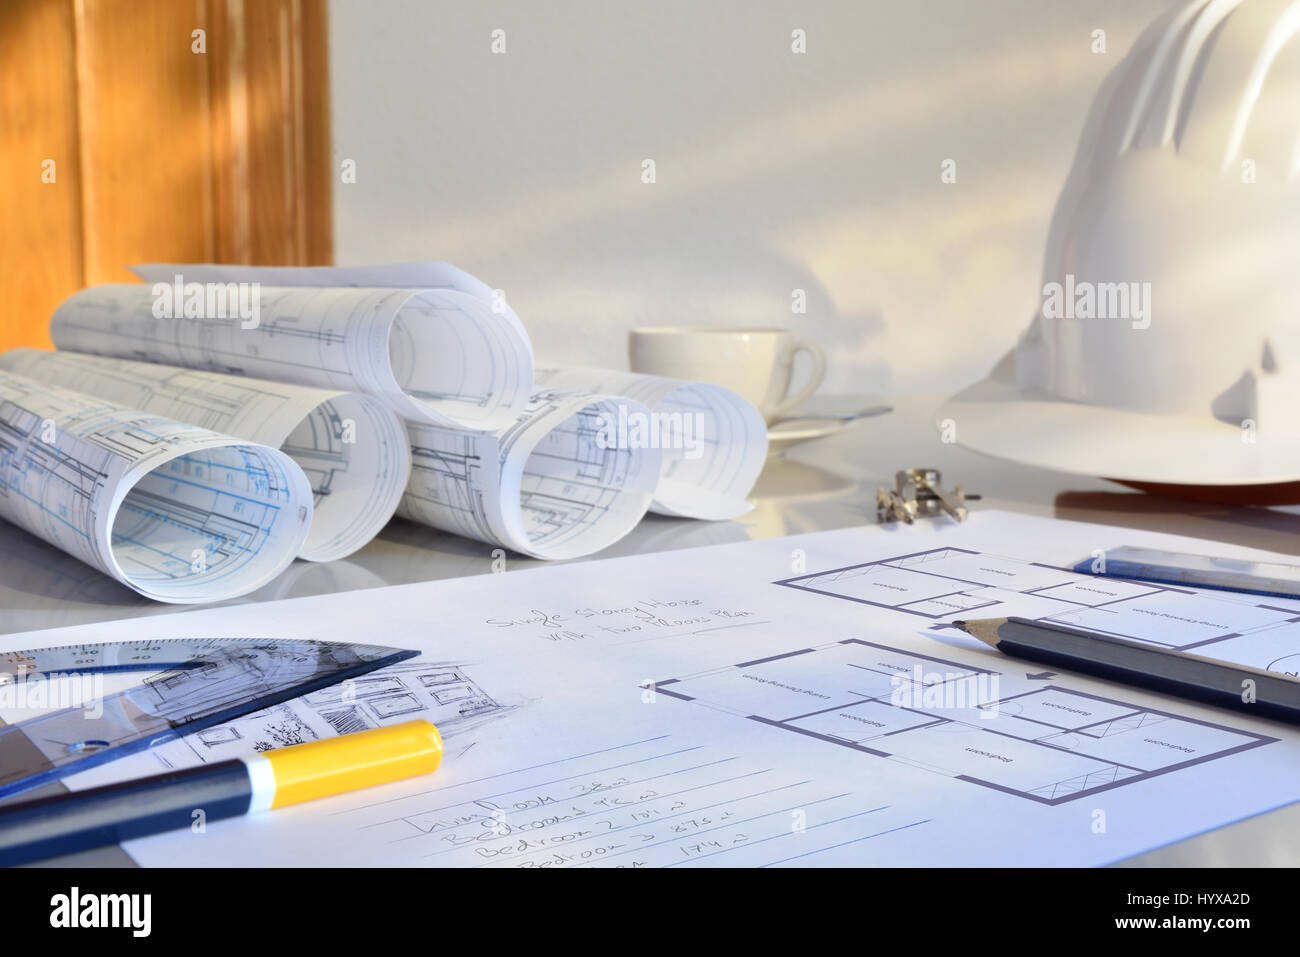 Working table of a construction engineer with plan of a project working table of a construction engineer with plan of a project blueprints and tools background front view horizontal composition malvernweather Images